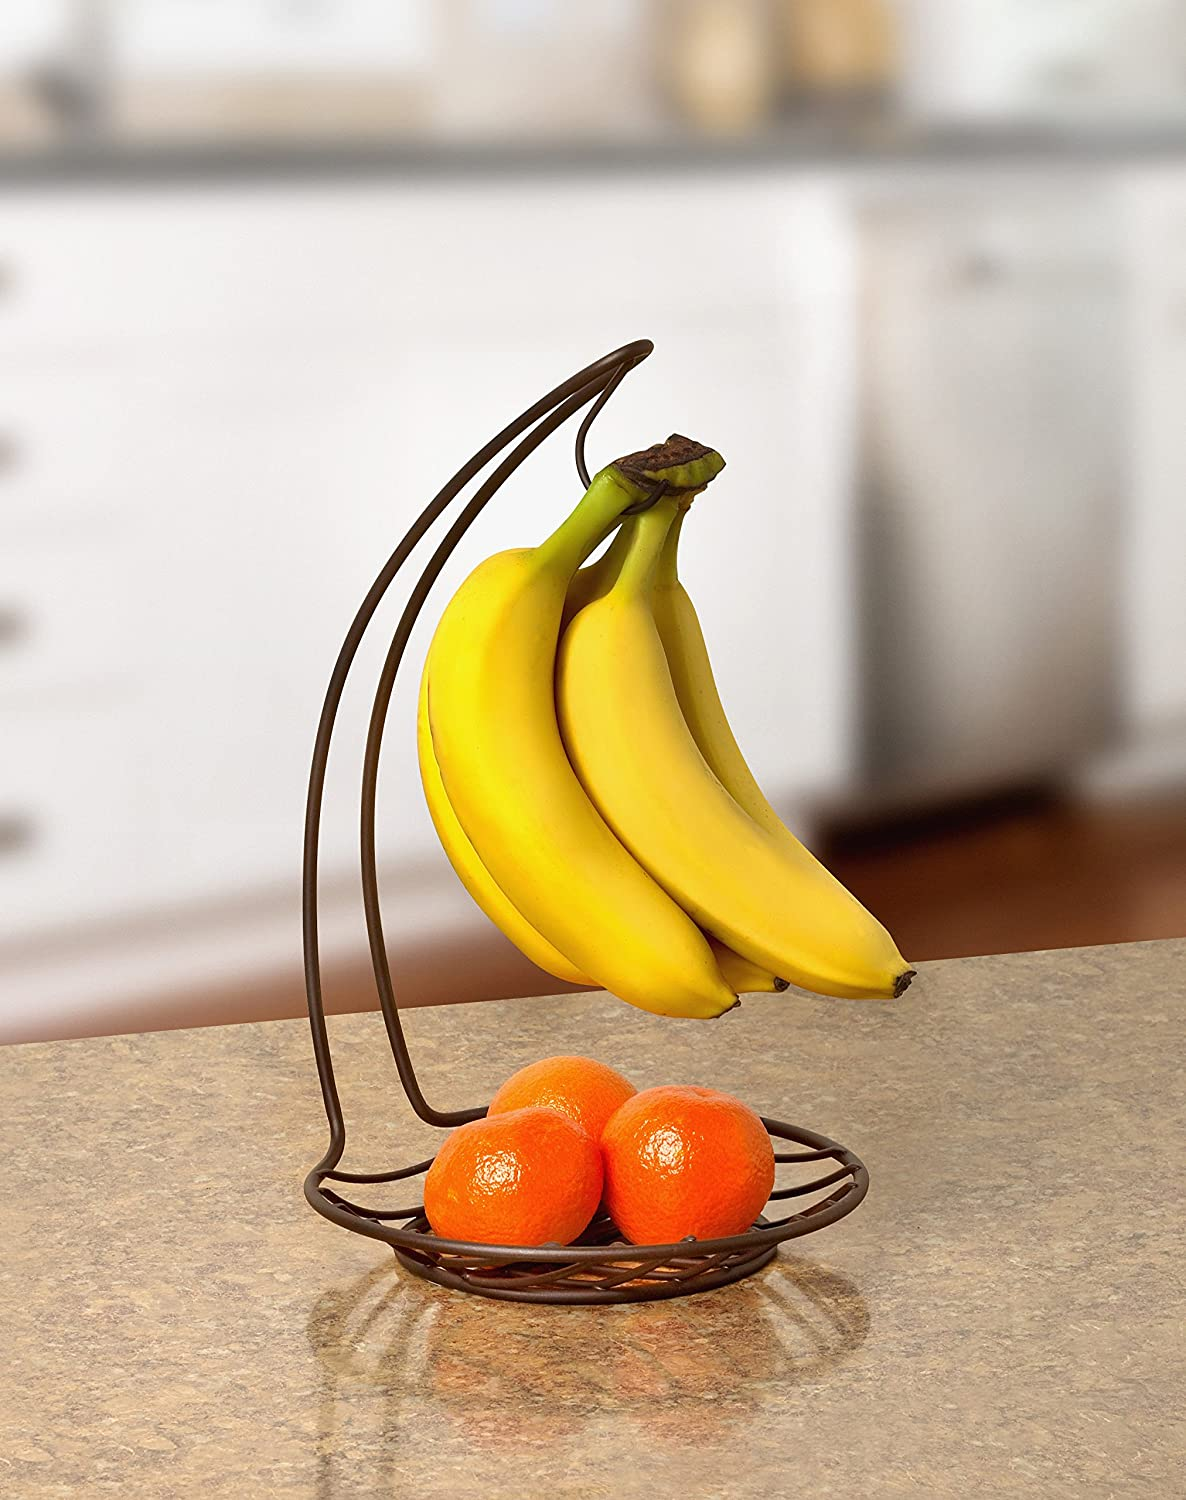 Amazon Com Spectrum Diversified Wright Banana Holder Countertop Tree Hanger For Bananas Small Tray For Fruits Vegetables Produce And Snack Storage Sits On Bars Tables Bronze